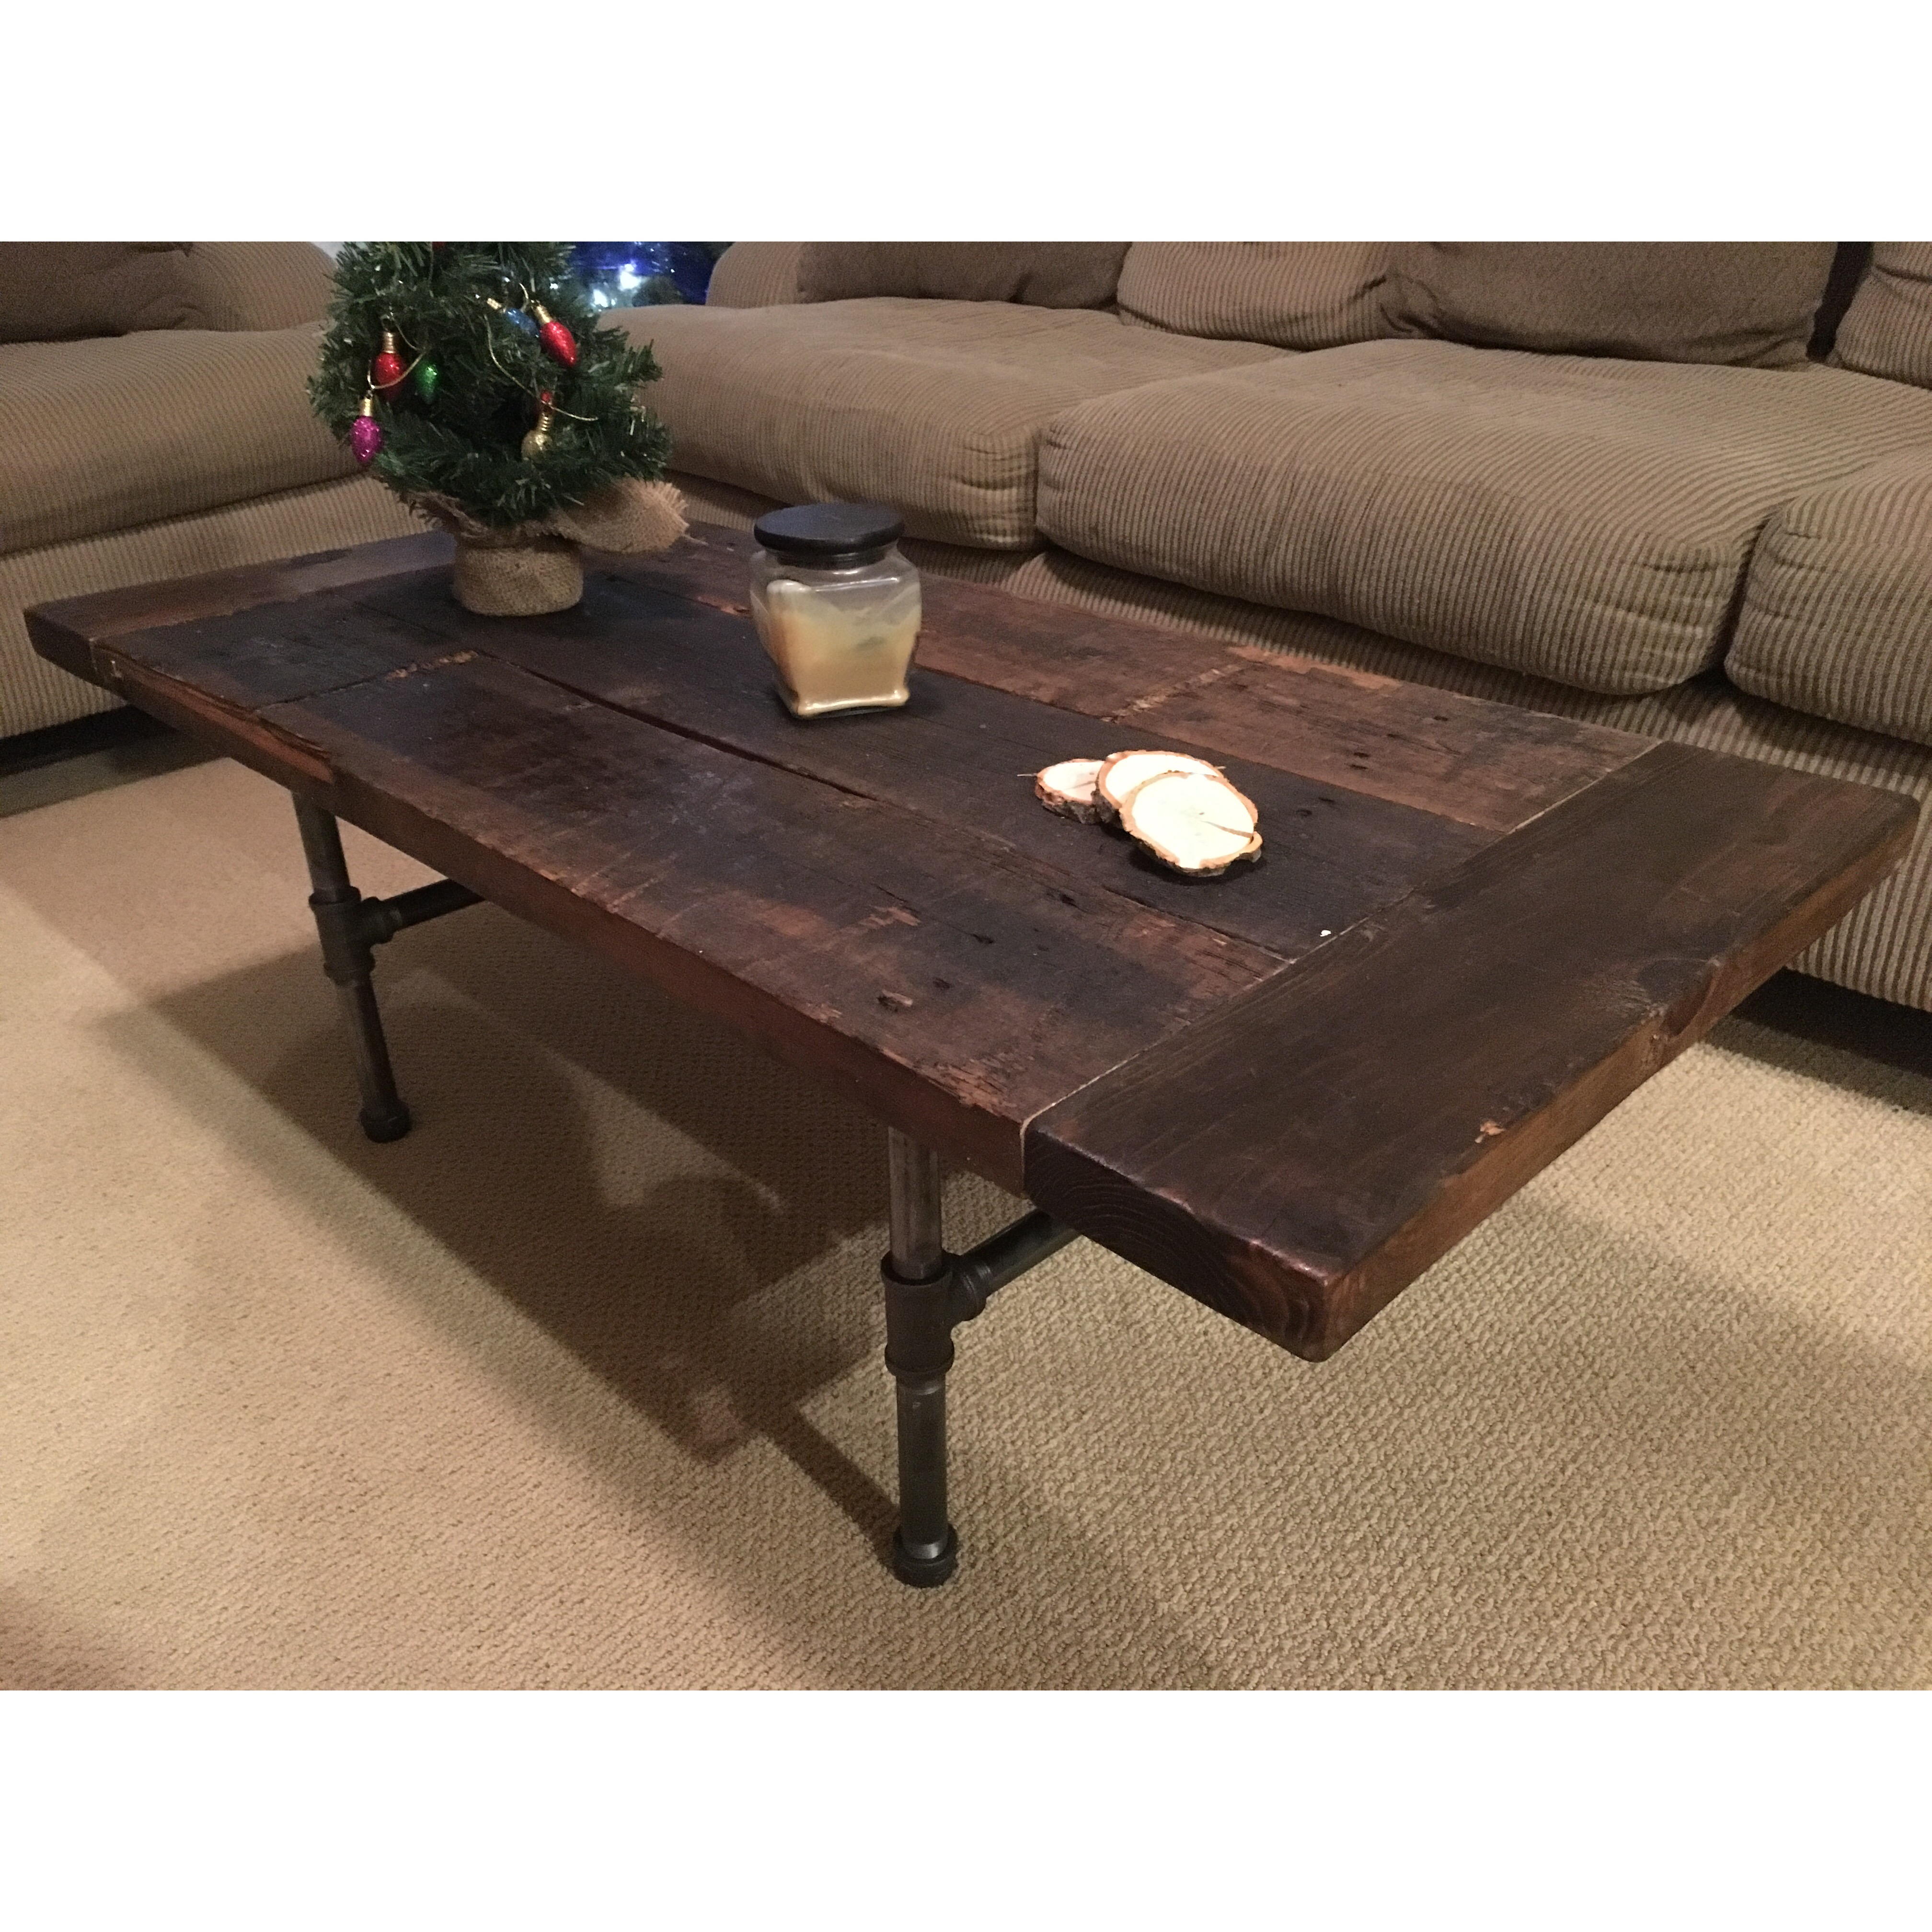 Reclaimed Wood / Industrial Base Coffee Table